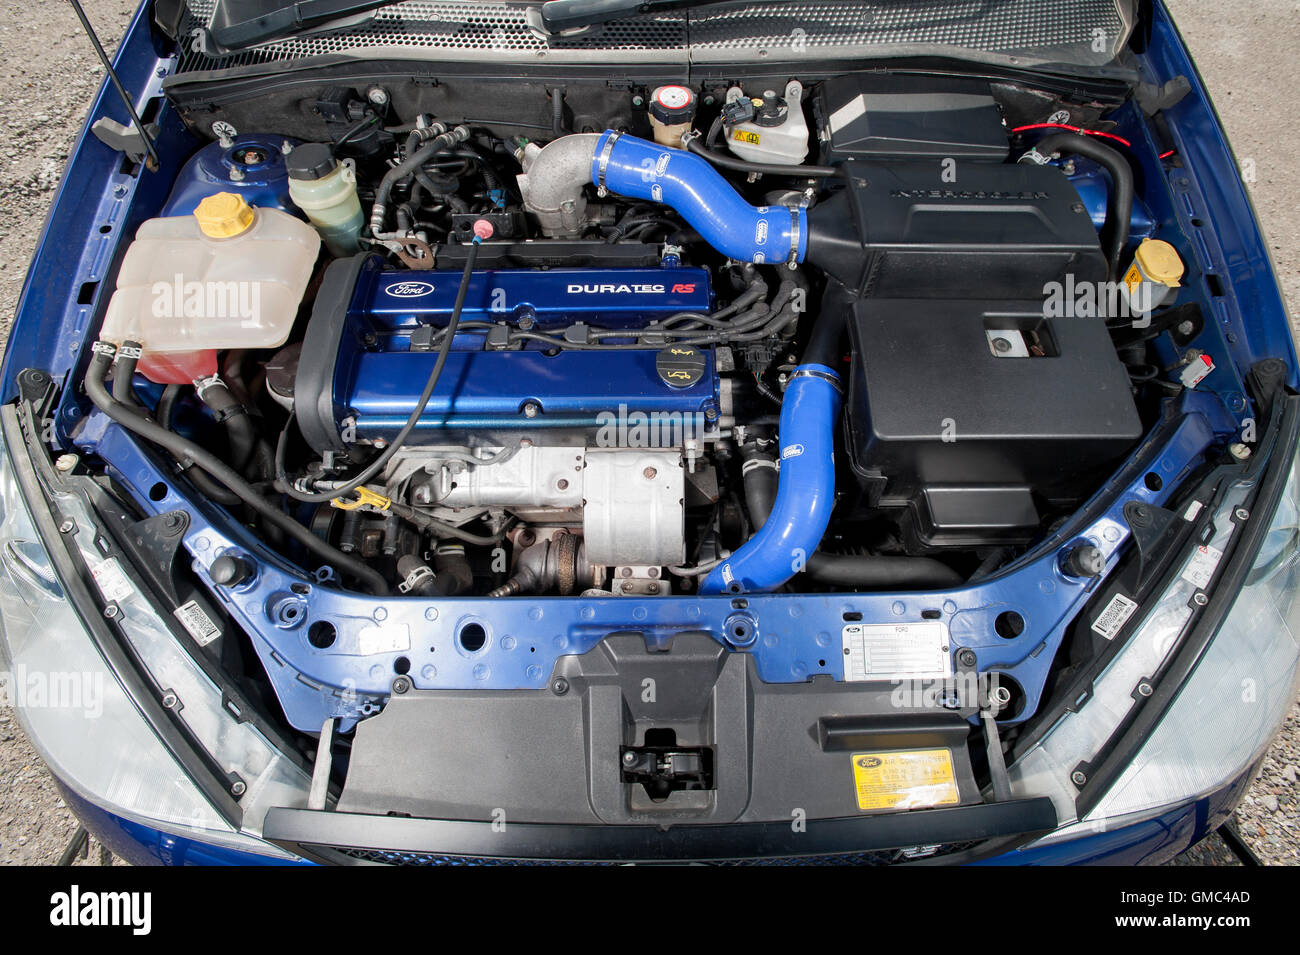 Ford Focus RS Mk1 engine bay, high performance hot hatch car Stock ...